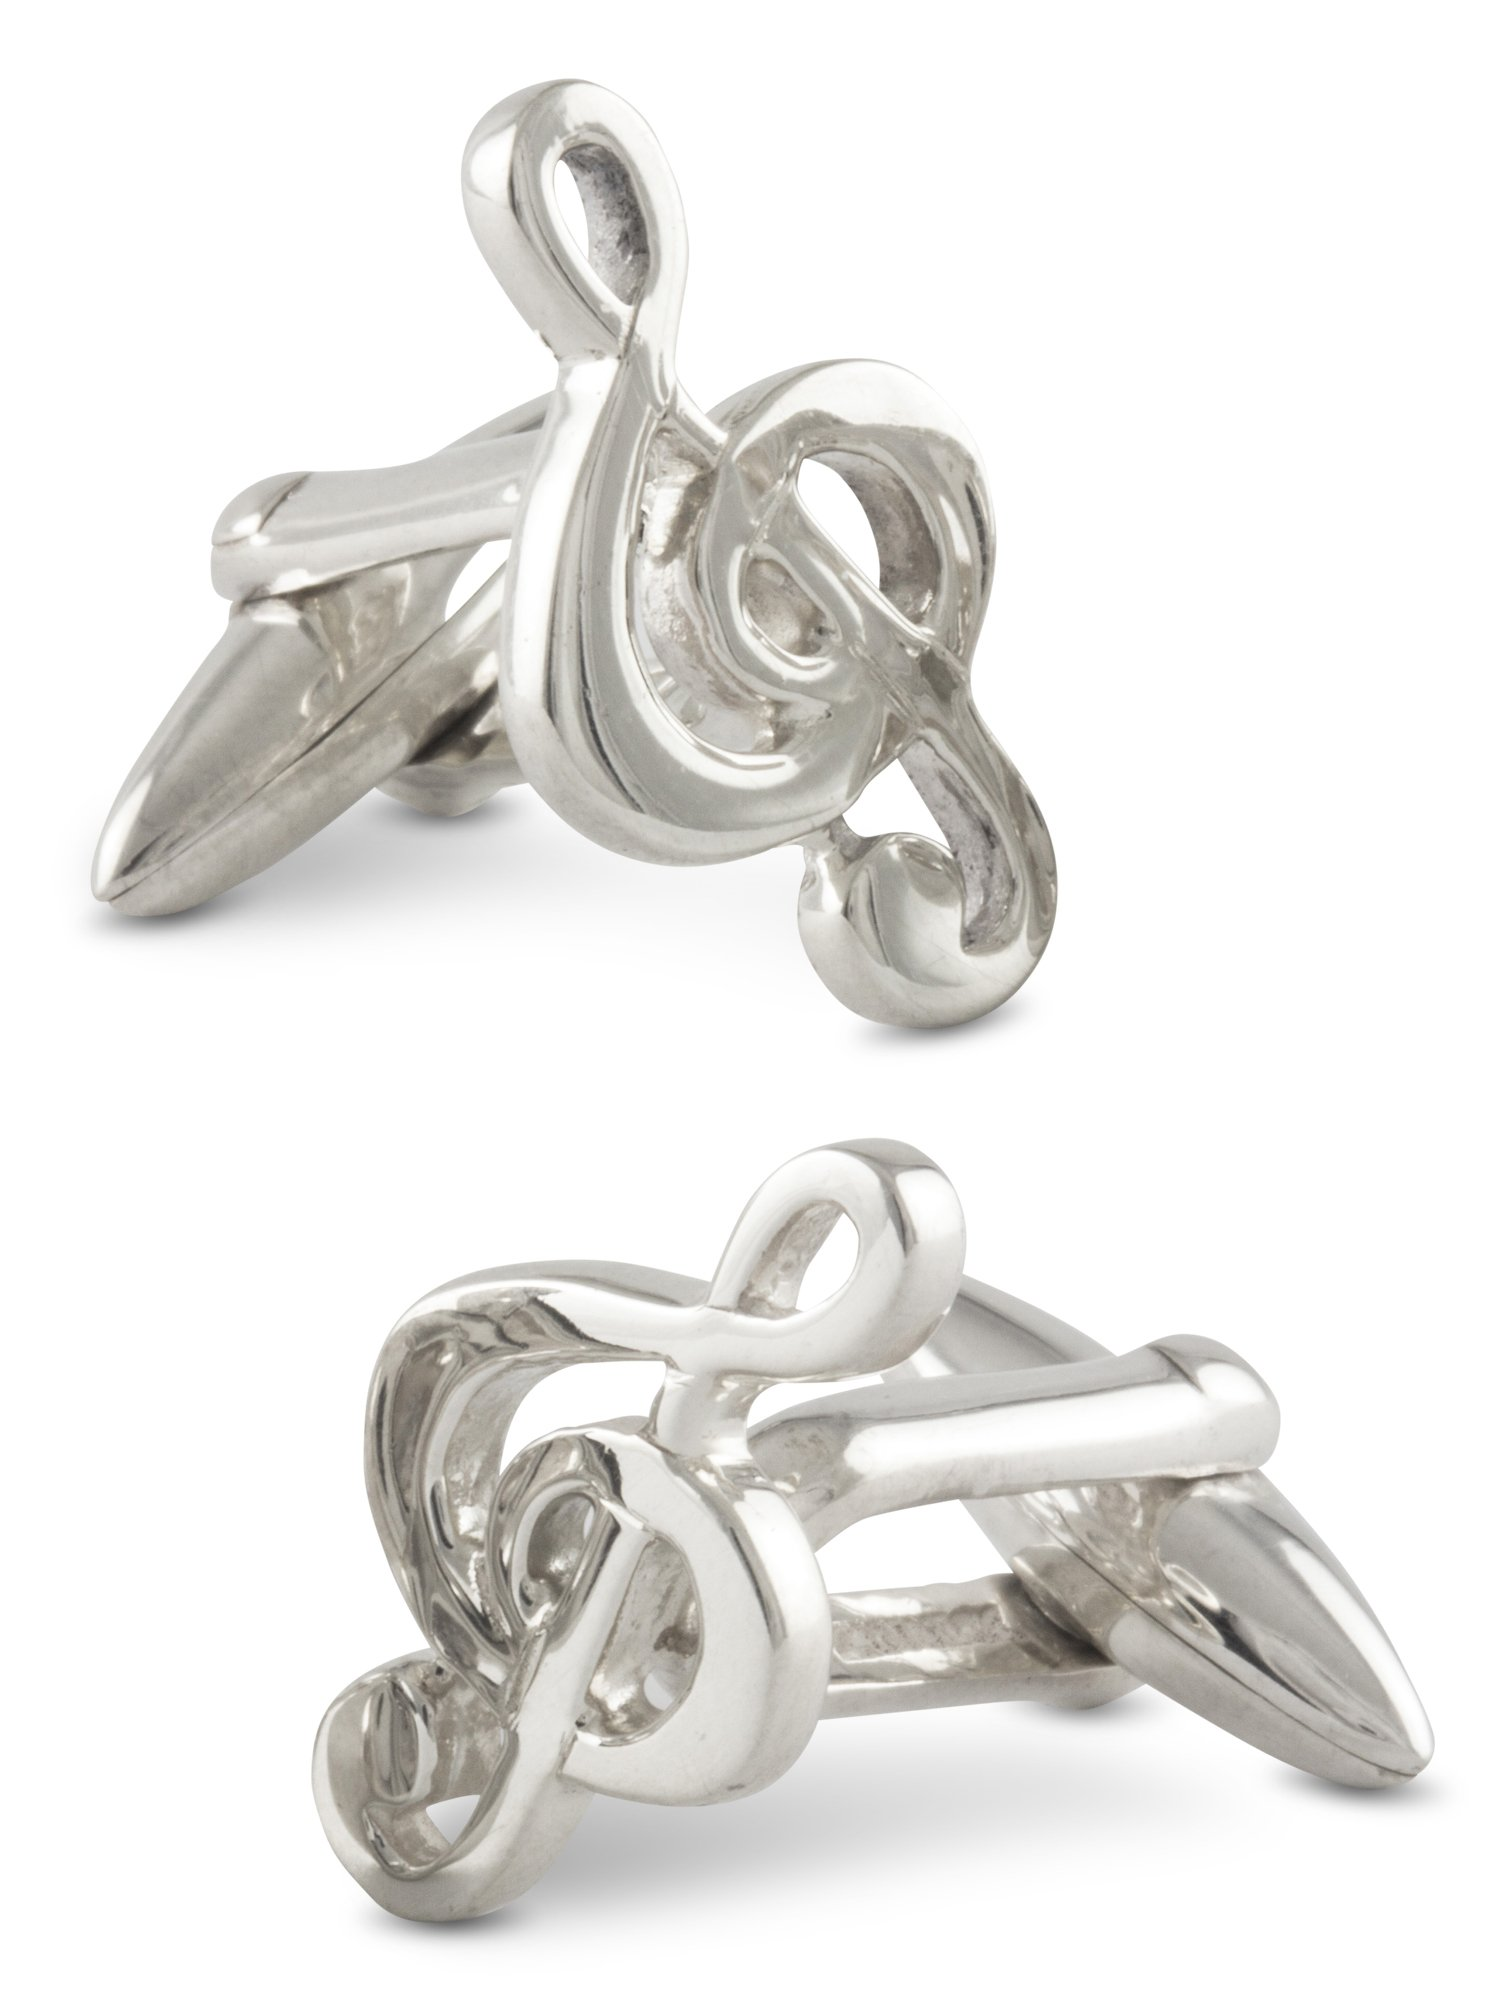 ZAUNICK Treble Clef Cufflinks Sterling Silver